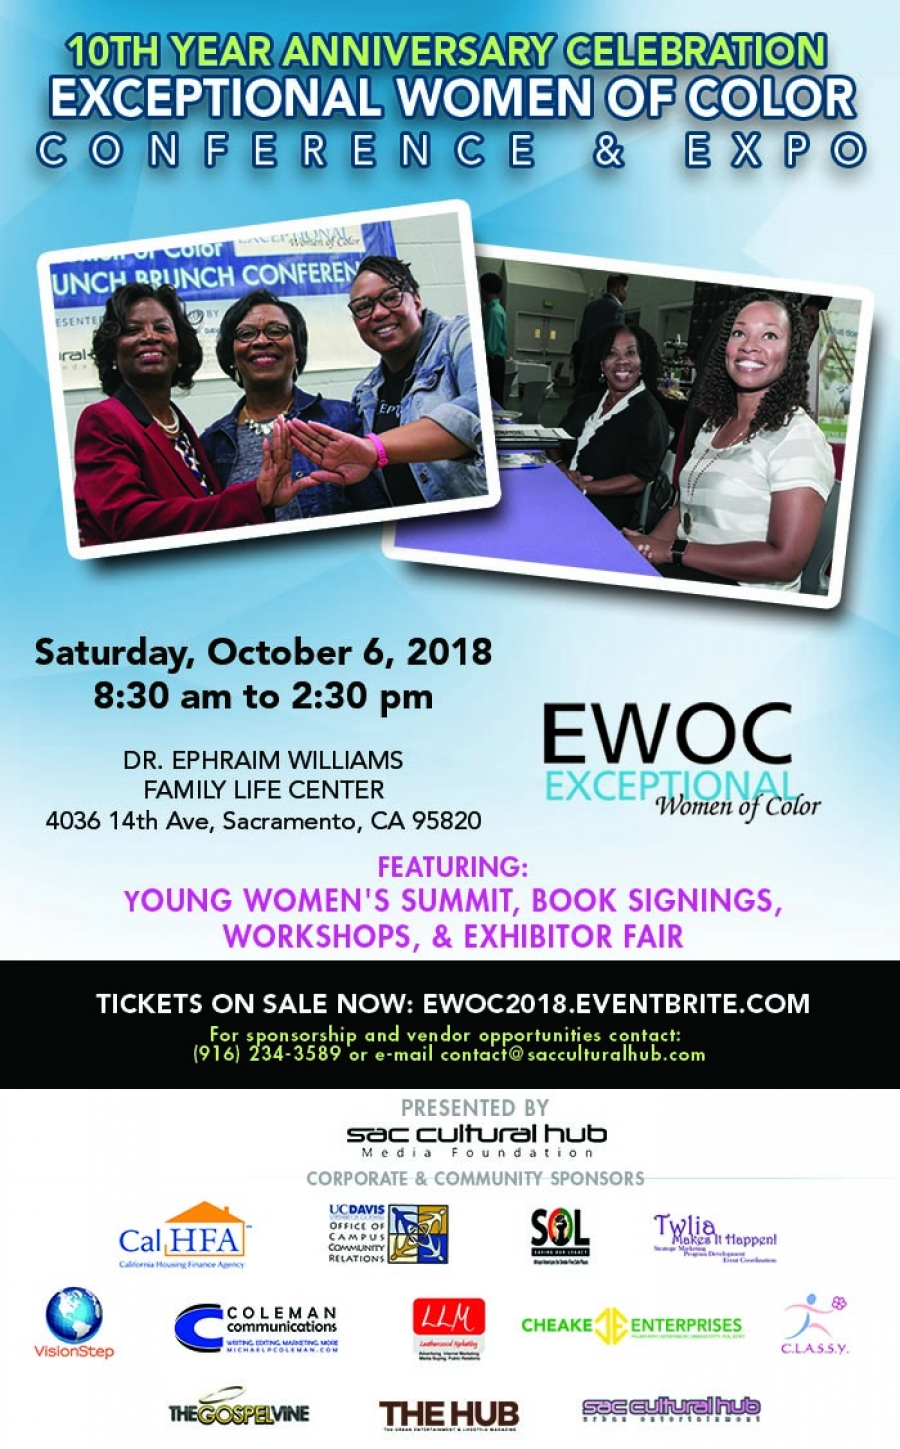 WOMEN MATTER: Claiming Physical Health & Financial Wealth at the 10th Year Anniversary Celebration of EWOC Conference